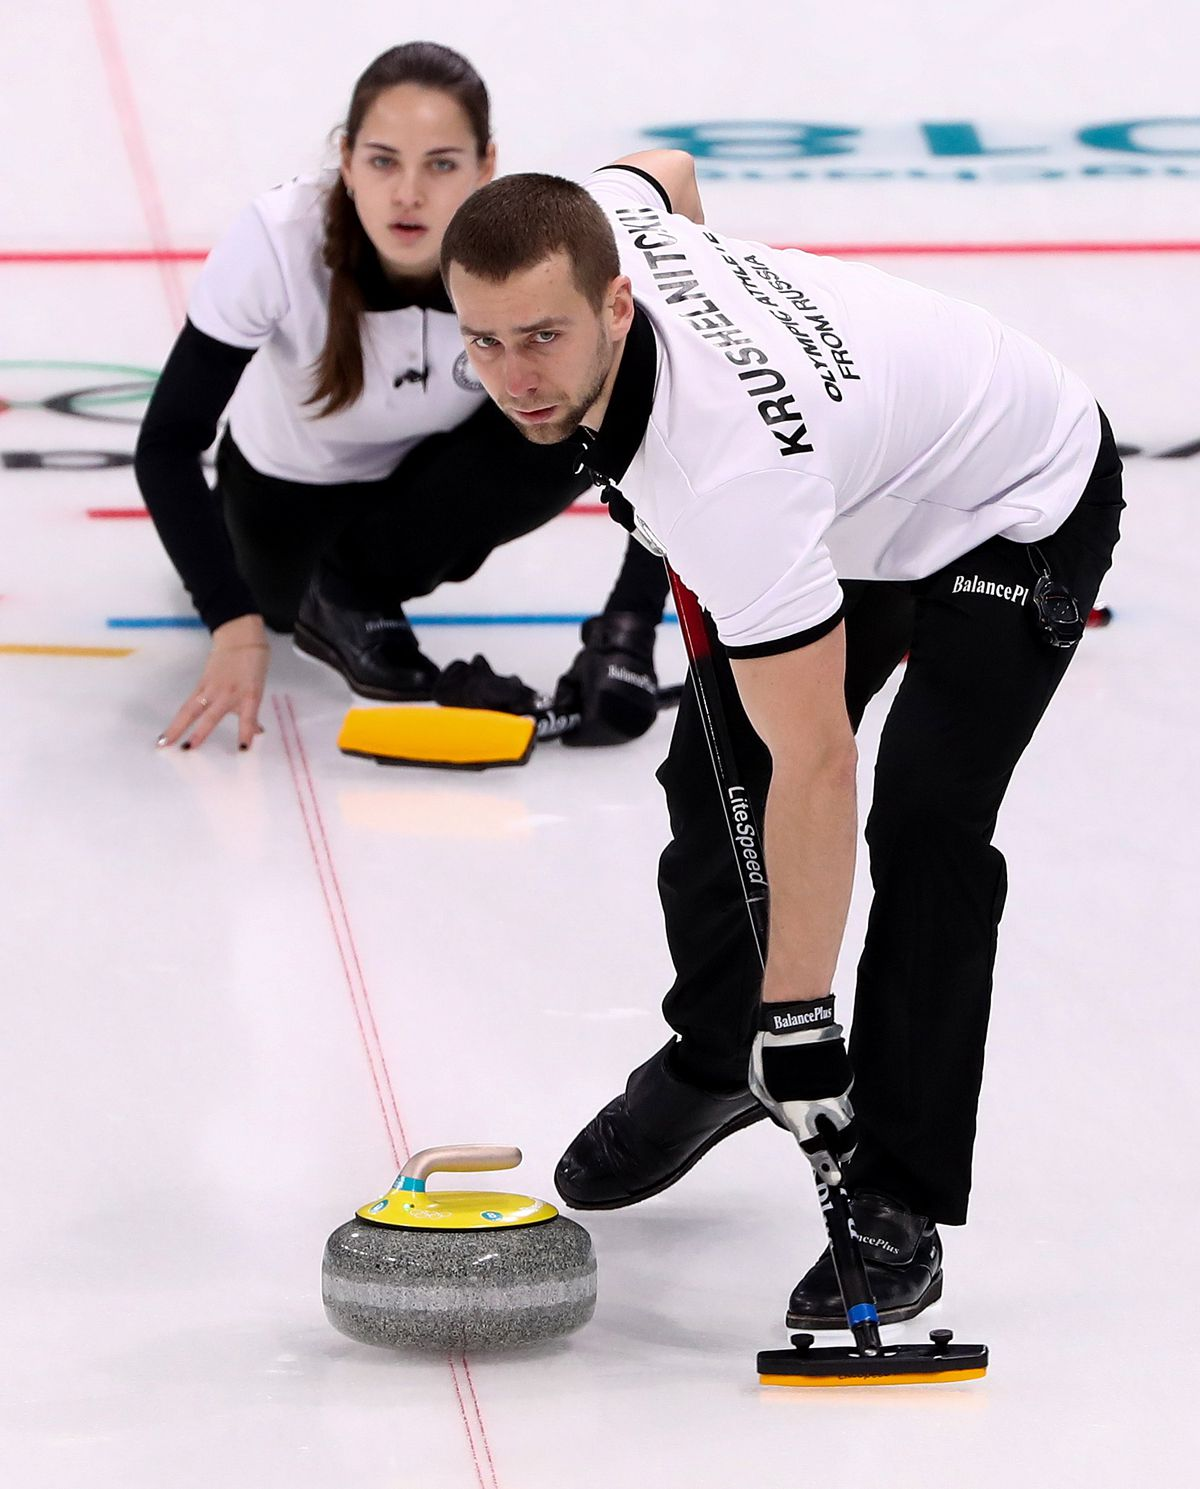 2018 Winter Olympic Games, Curling, Mixed Doubles: South Korea 5 - 6 OAR